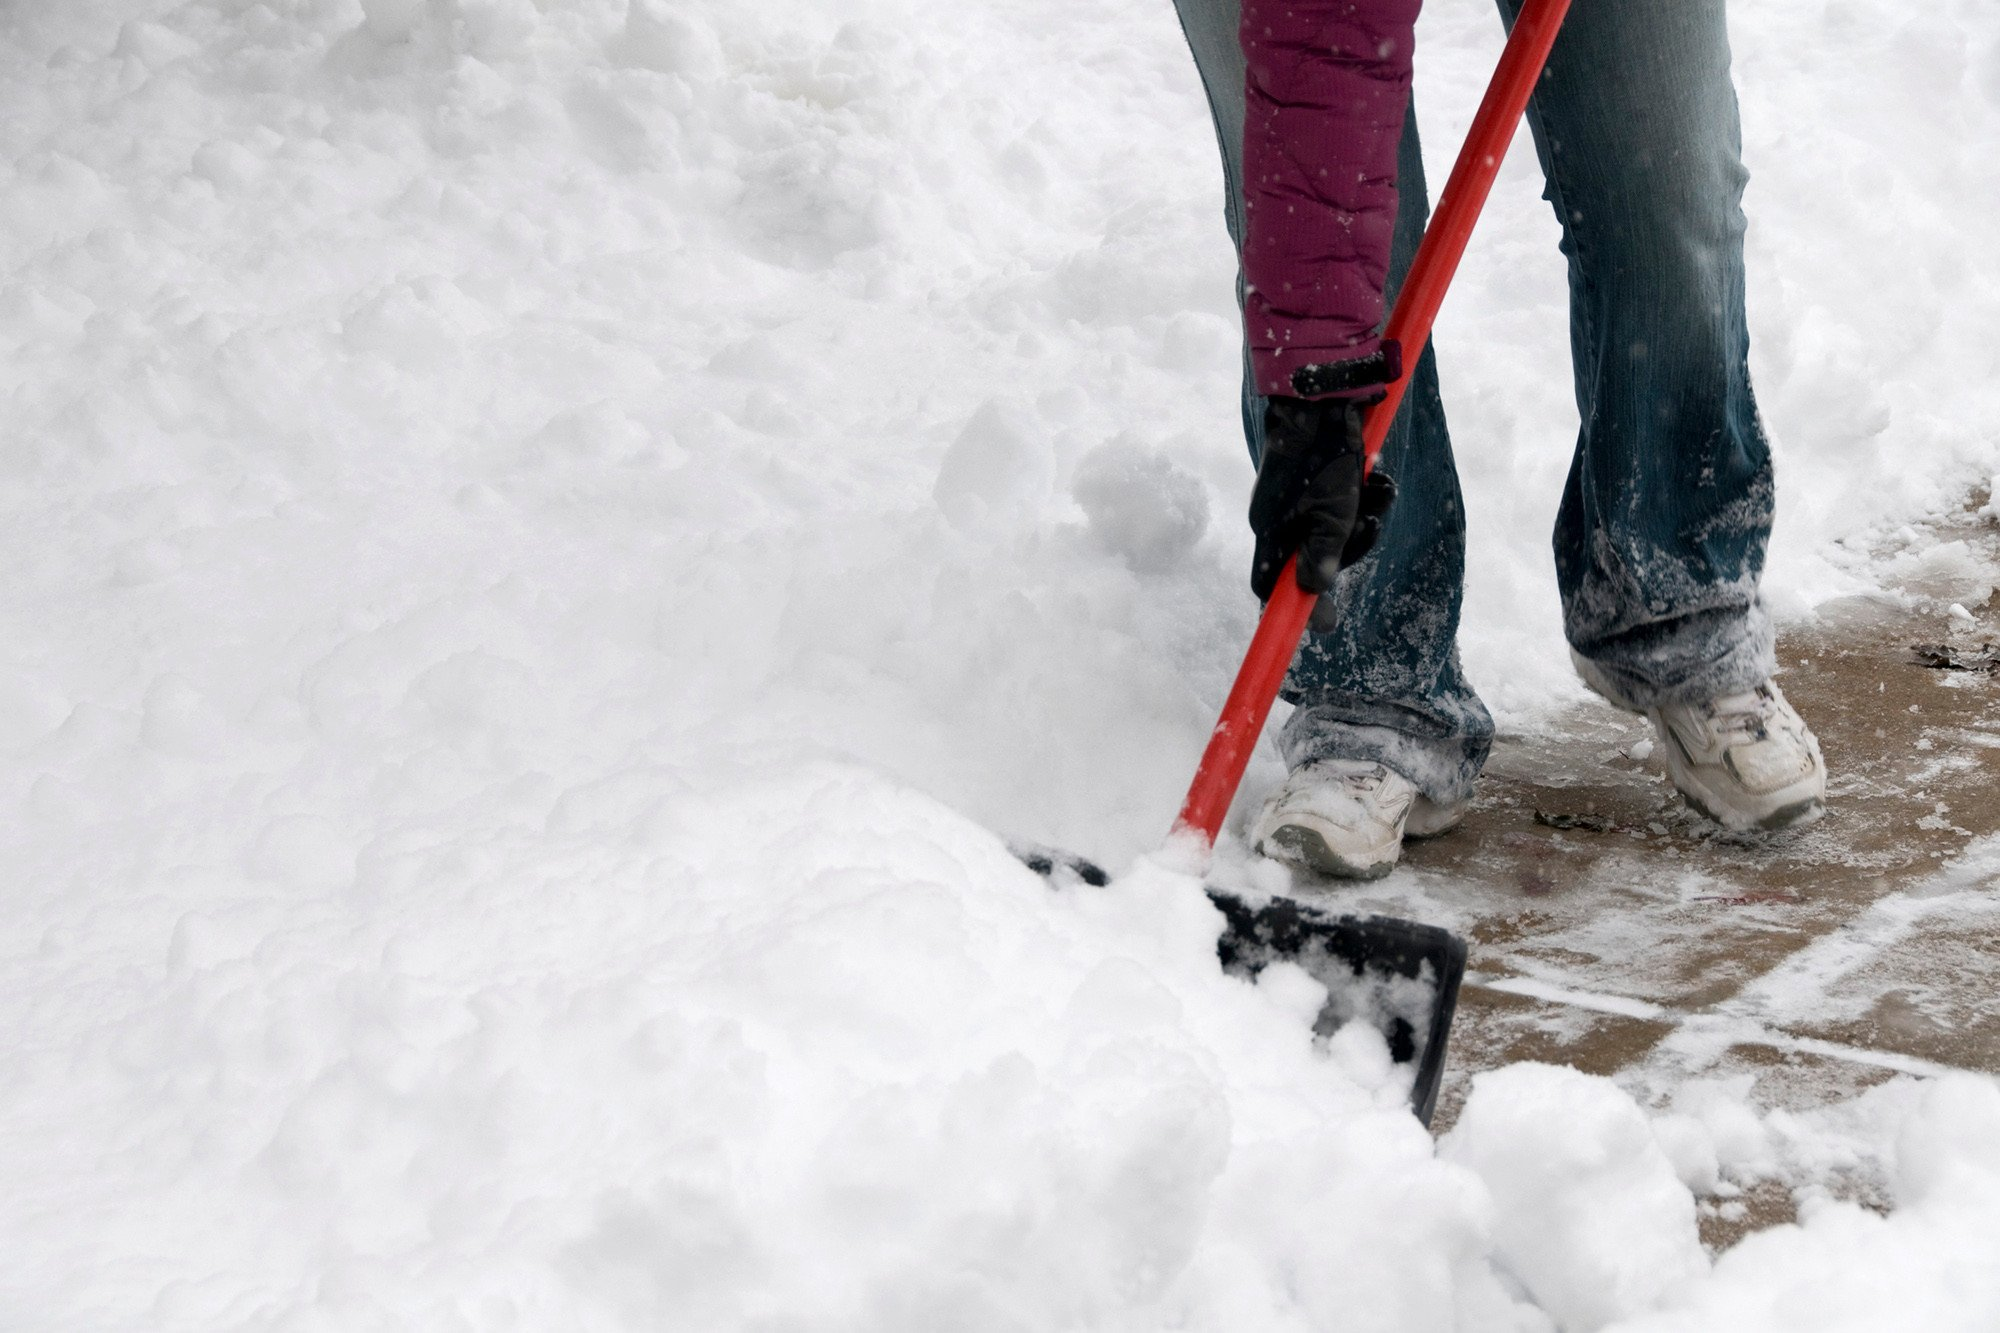 Woman shoveling snow fatally run over by husband